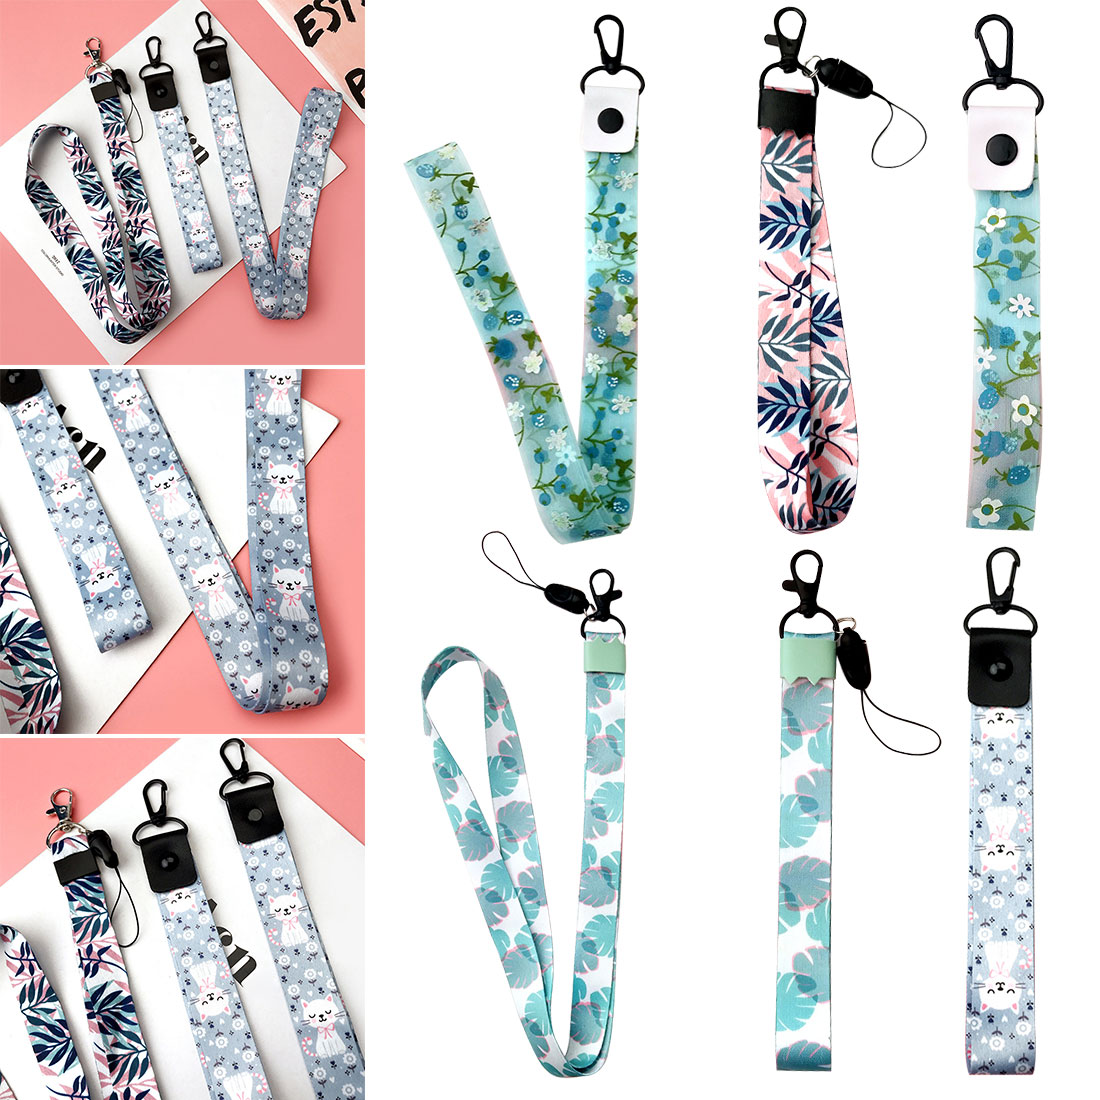 Mobile Phone Strap Cute Cartoon Flower Cat Lanyard Neck Strap For Keys ID Card S For Huawei USB Badge Holder DIY Hang Rope|Mobile Phone Straps| |  - title=